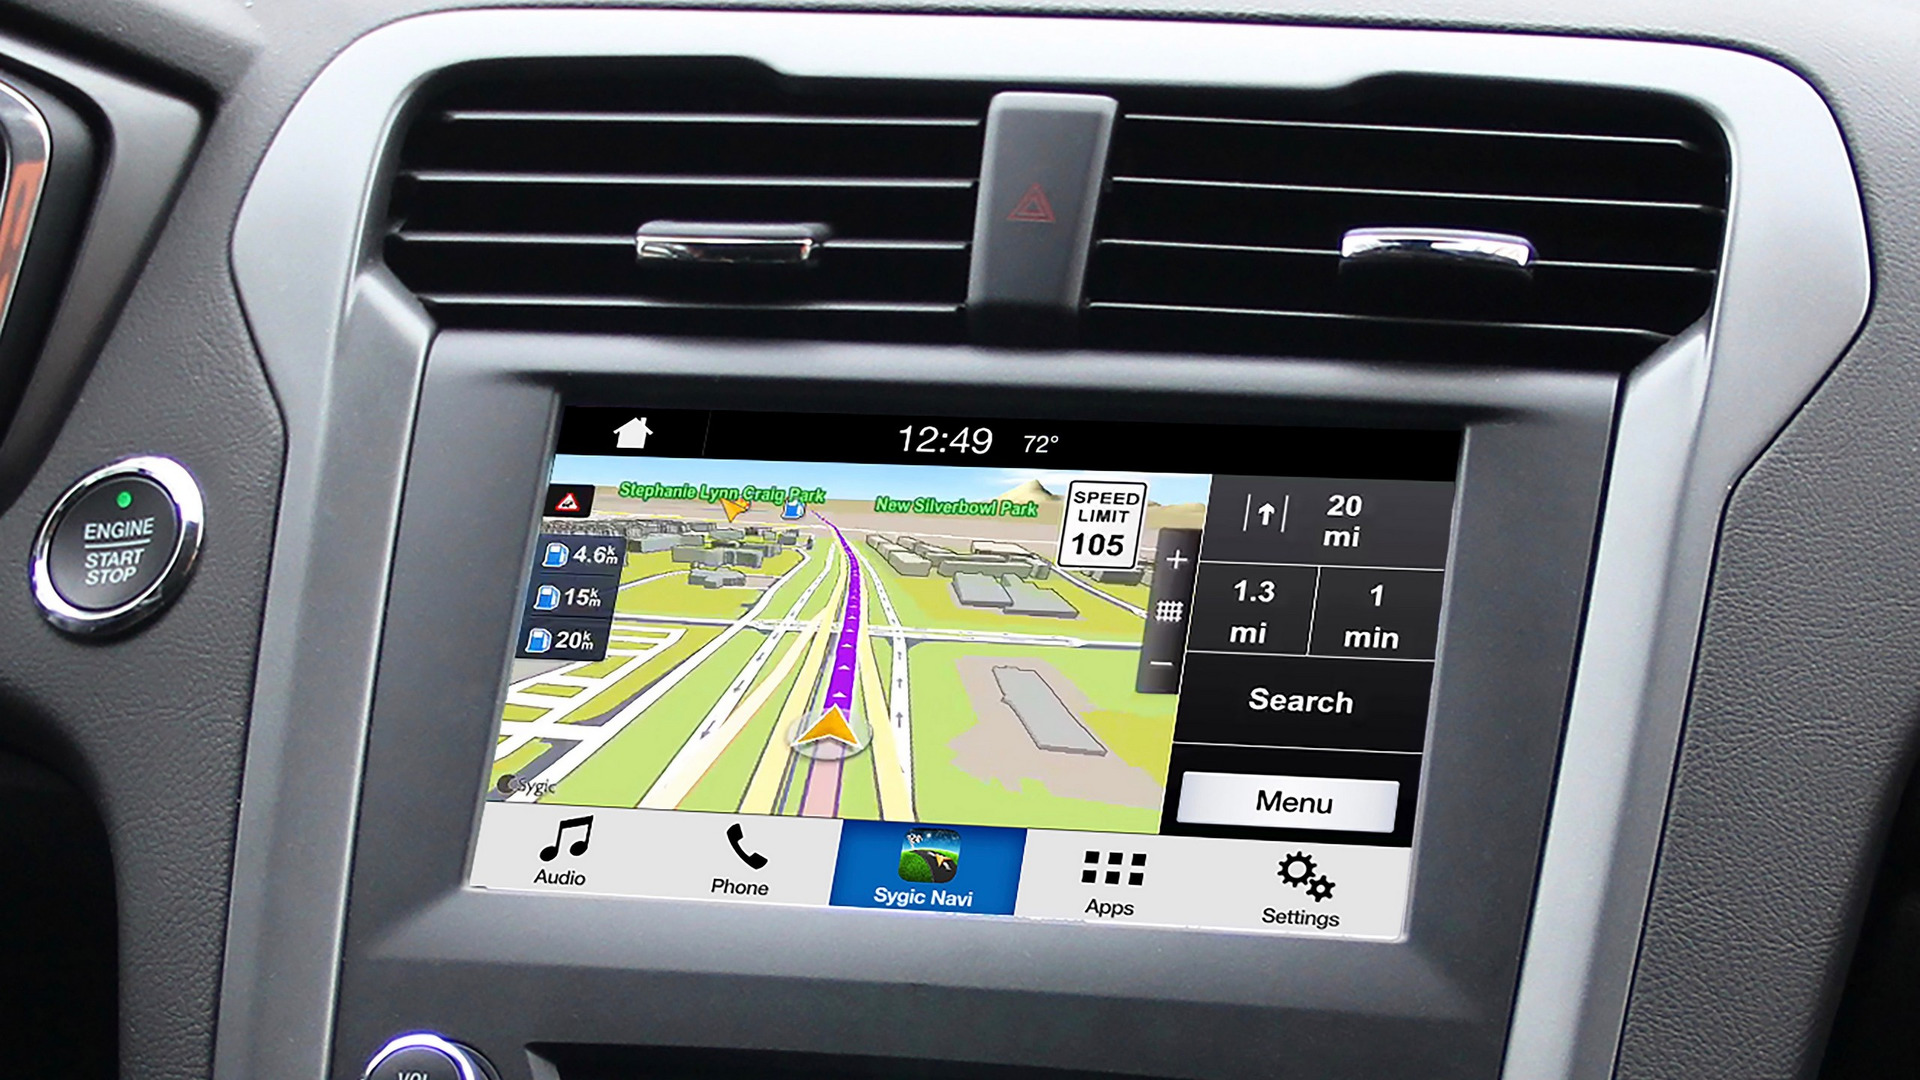 Ford Sync 3 will project smartphone nav apps on touchscreen